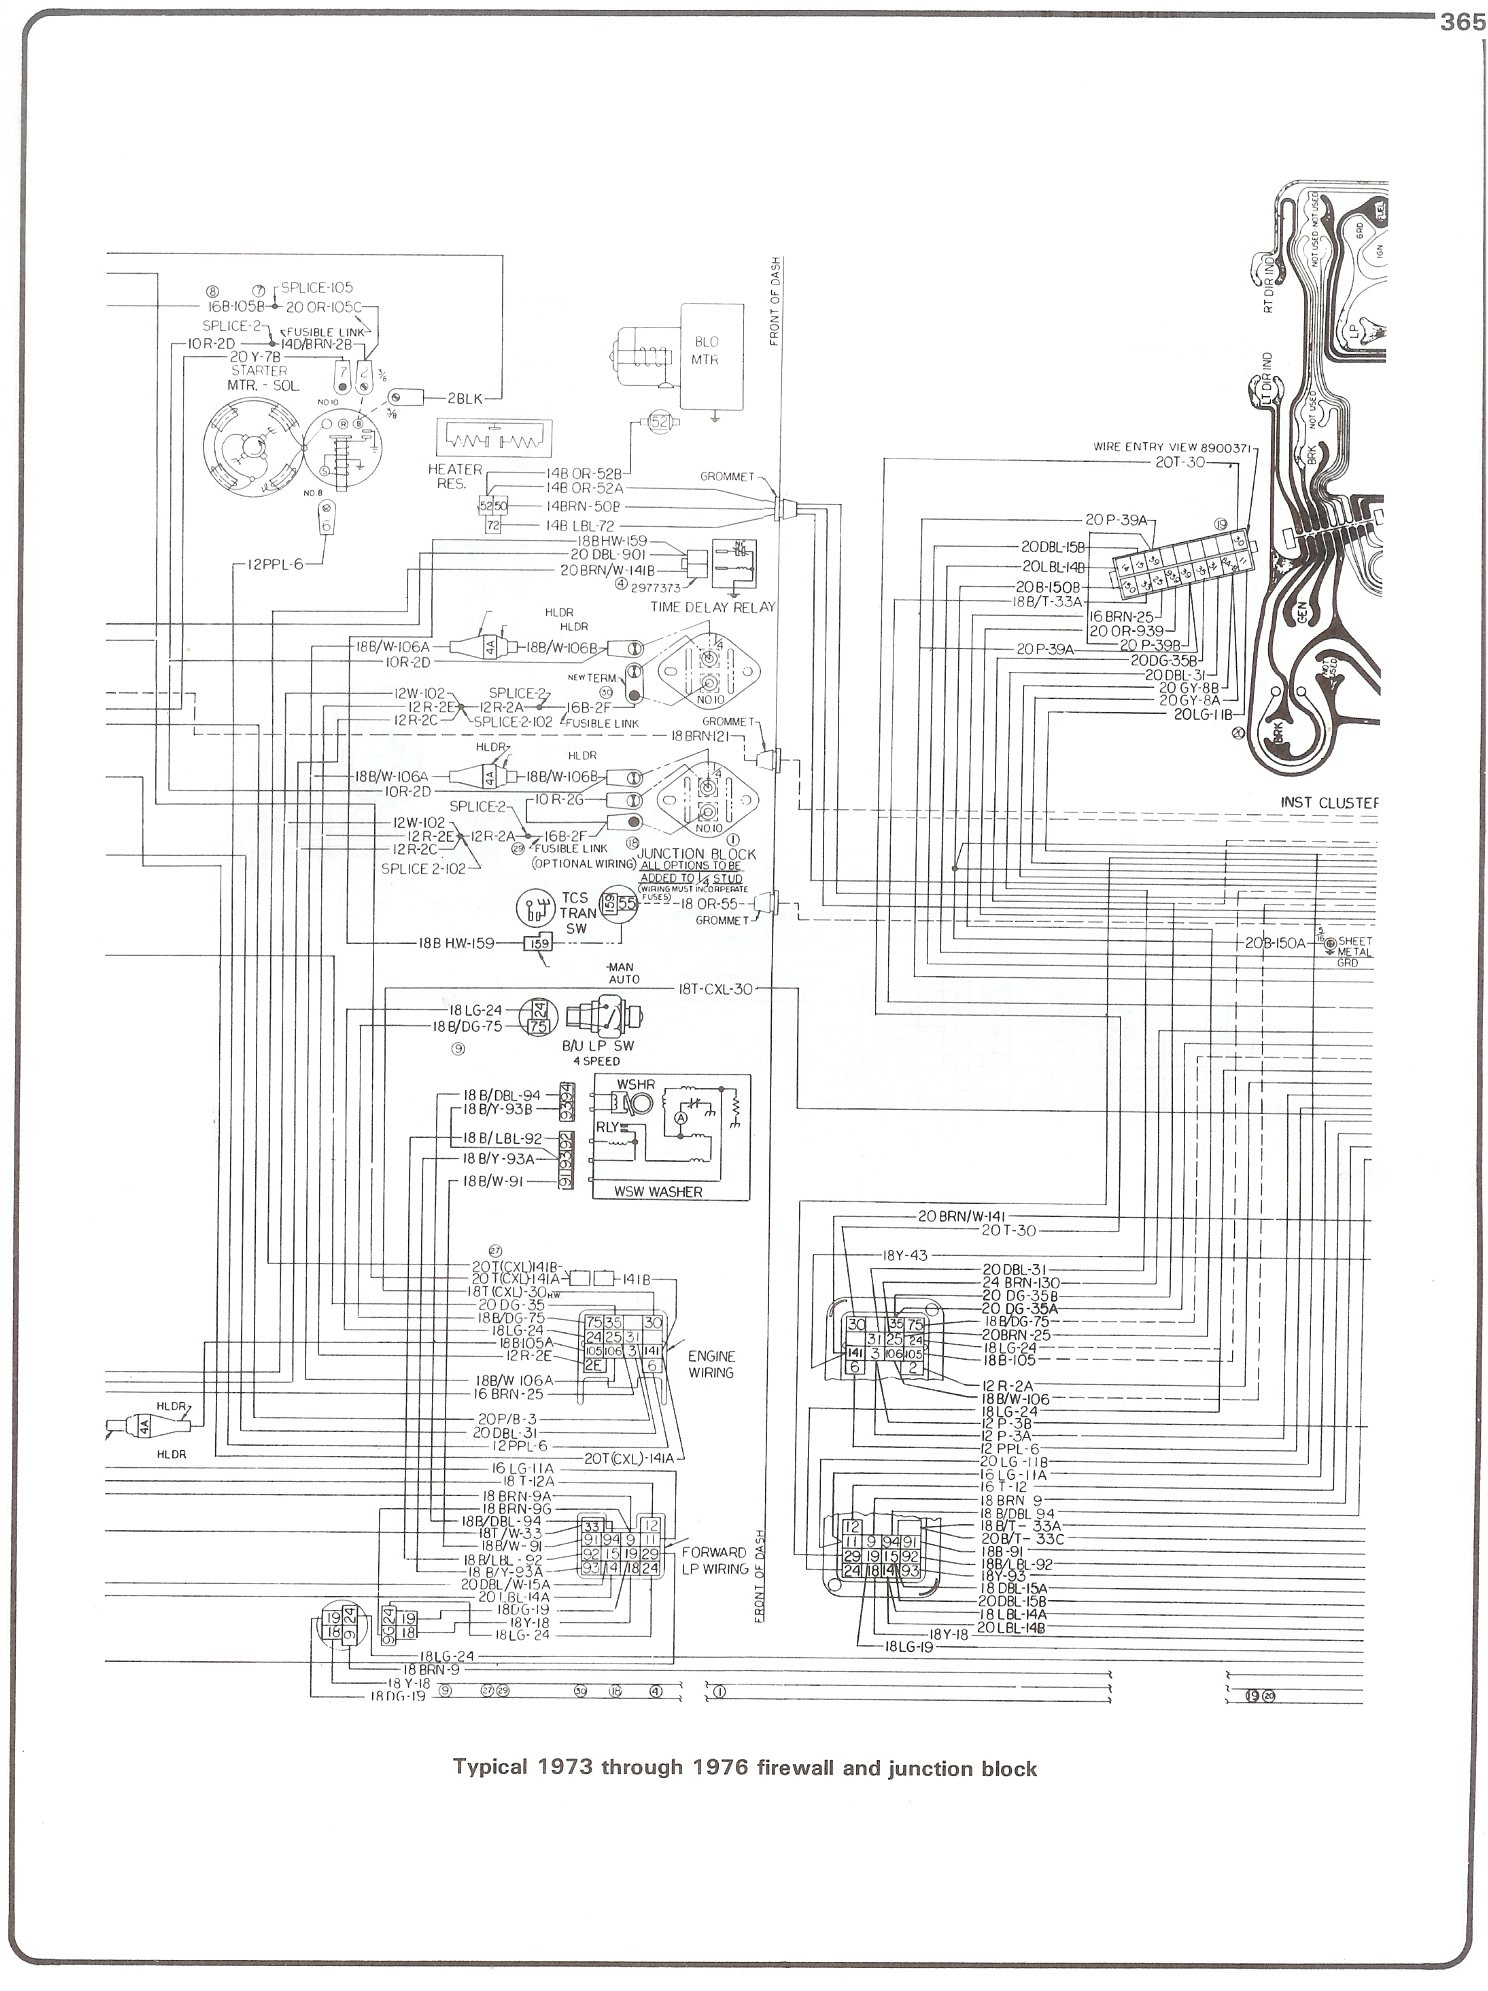 73 76_firewall_junct complete 73 87 wiring diagrams 1978 chevy truck fuse box diagram at reclaimingppi.co